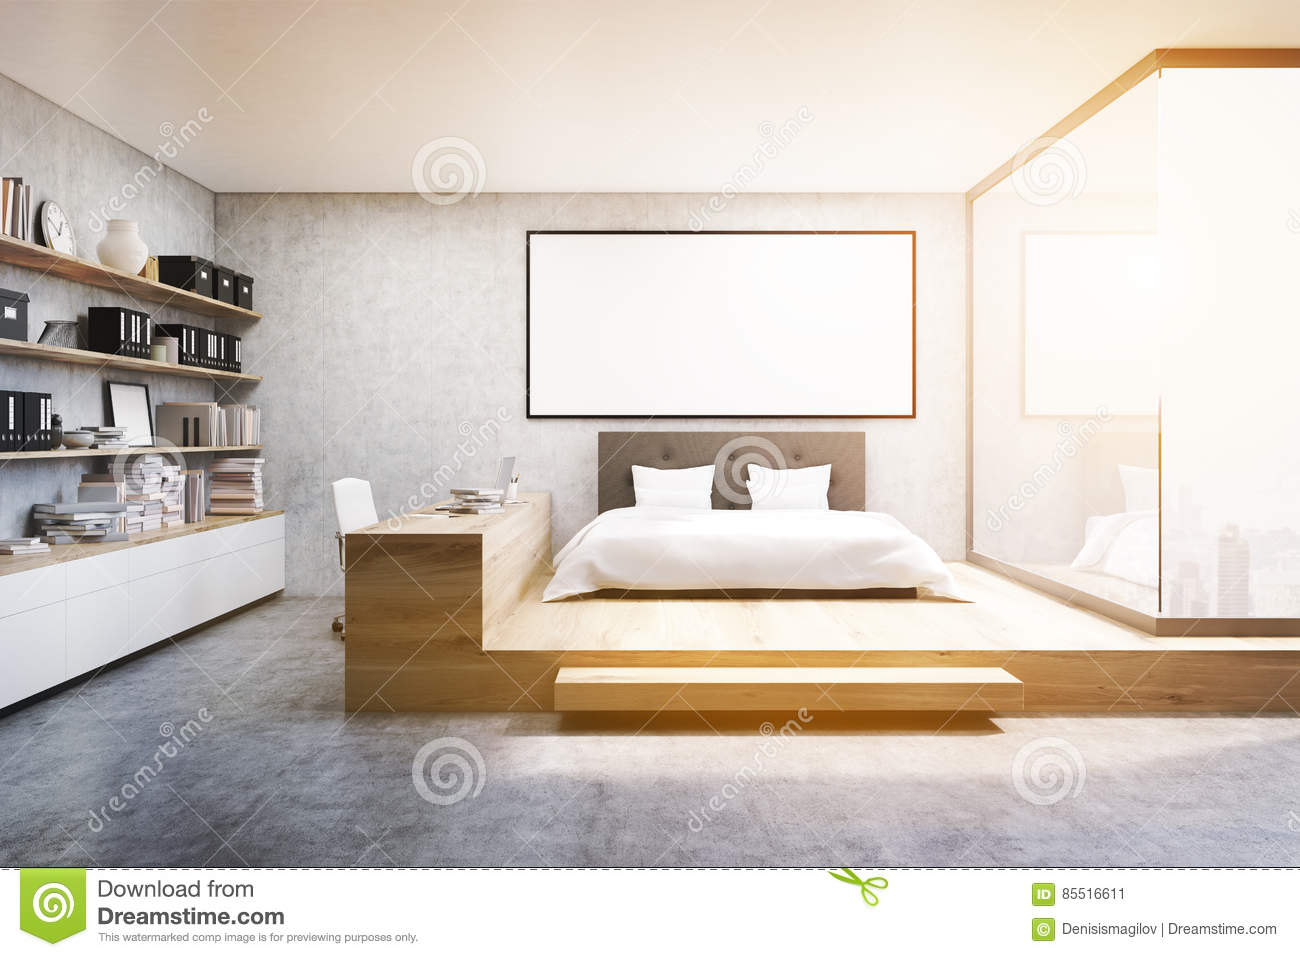 vue de face du si ge social dans la chambre coucher modifi e la tonalit image stock image. Black Bedroom Furniture Sets. Home Design Ideas